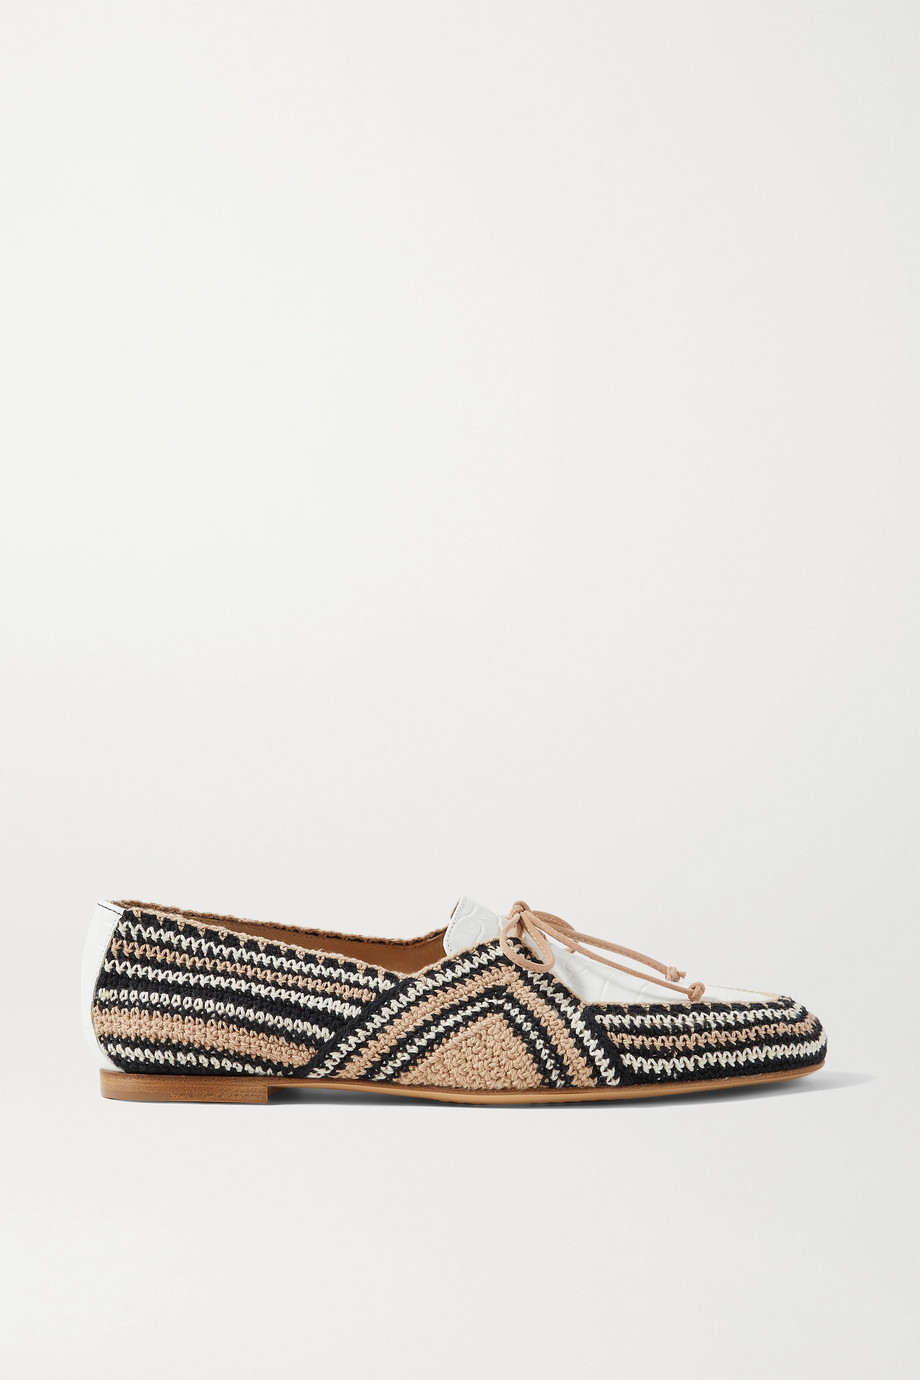 Gabriela Hearst Hays crocheted cotton and croc-effect leather loafers